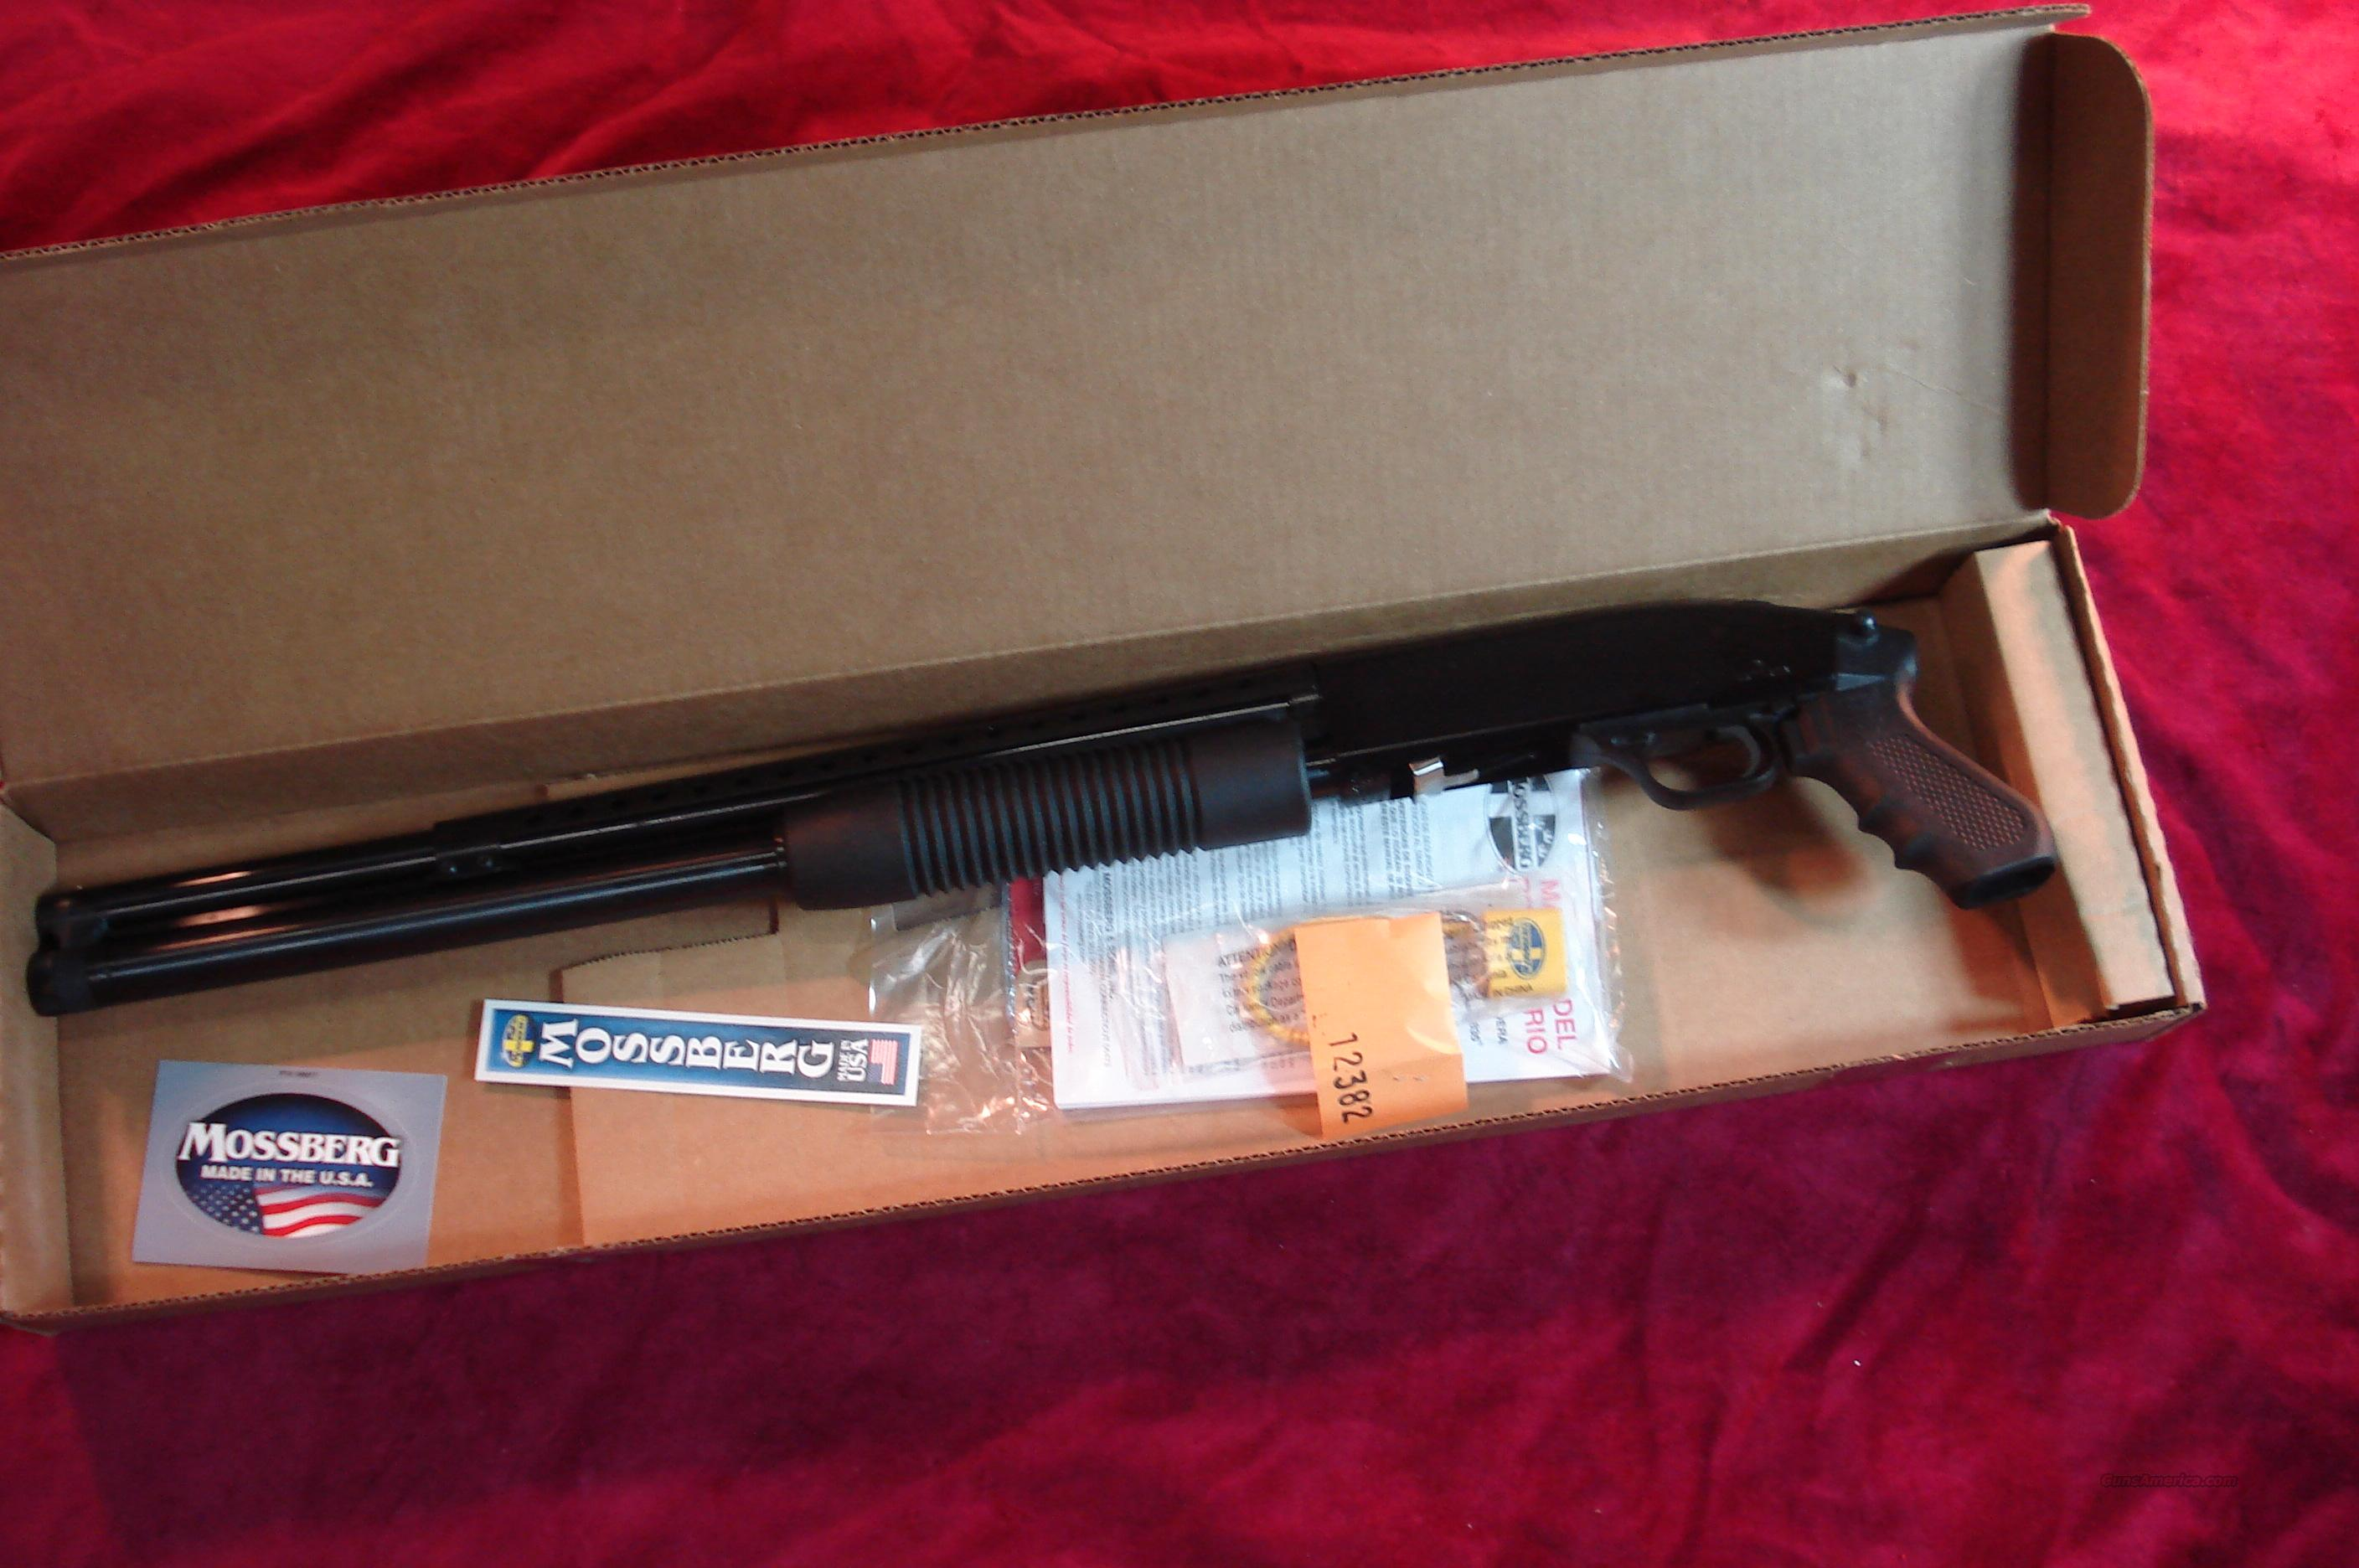 MOSSBERG 500 TACTICAL 12G PISTOL GRIP SHOTGUN W/MAGAZINE EXTENTION AND HEAT SHIELD NEW   (50580)  Guns > Shotguns > Mossberg Shotguns > Pump > Tactical